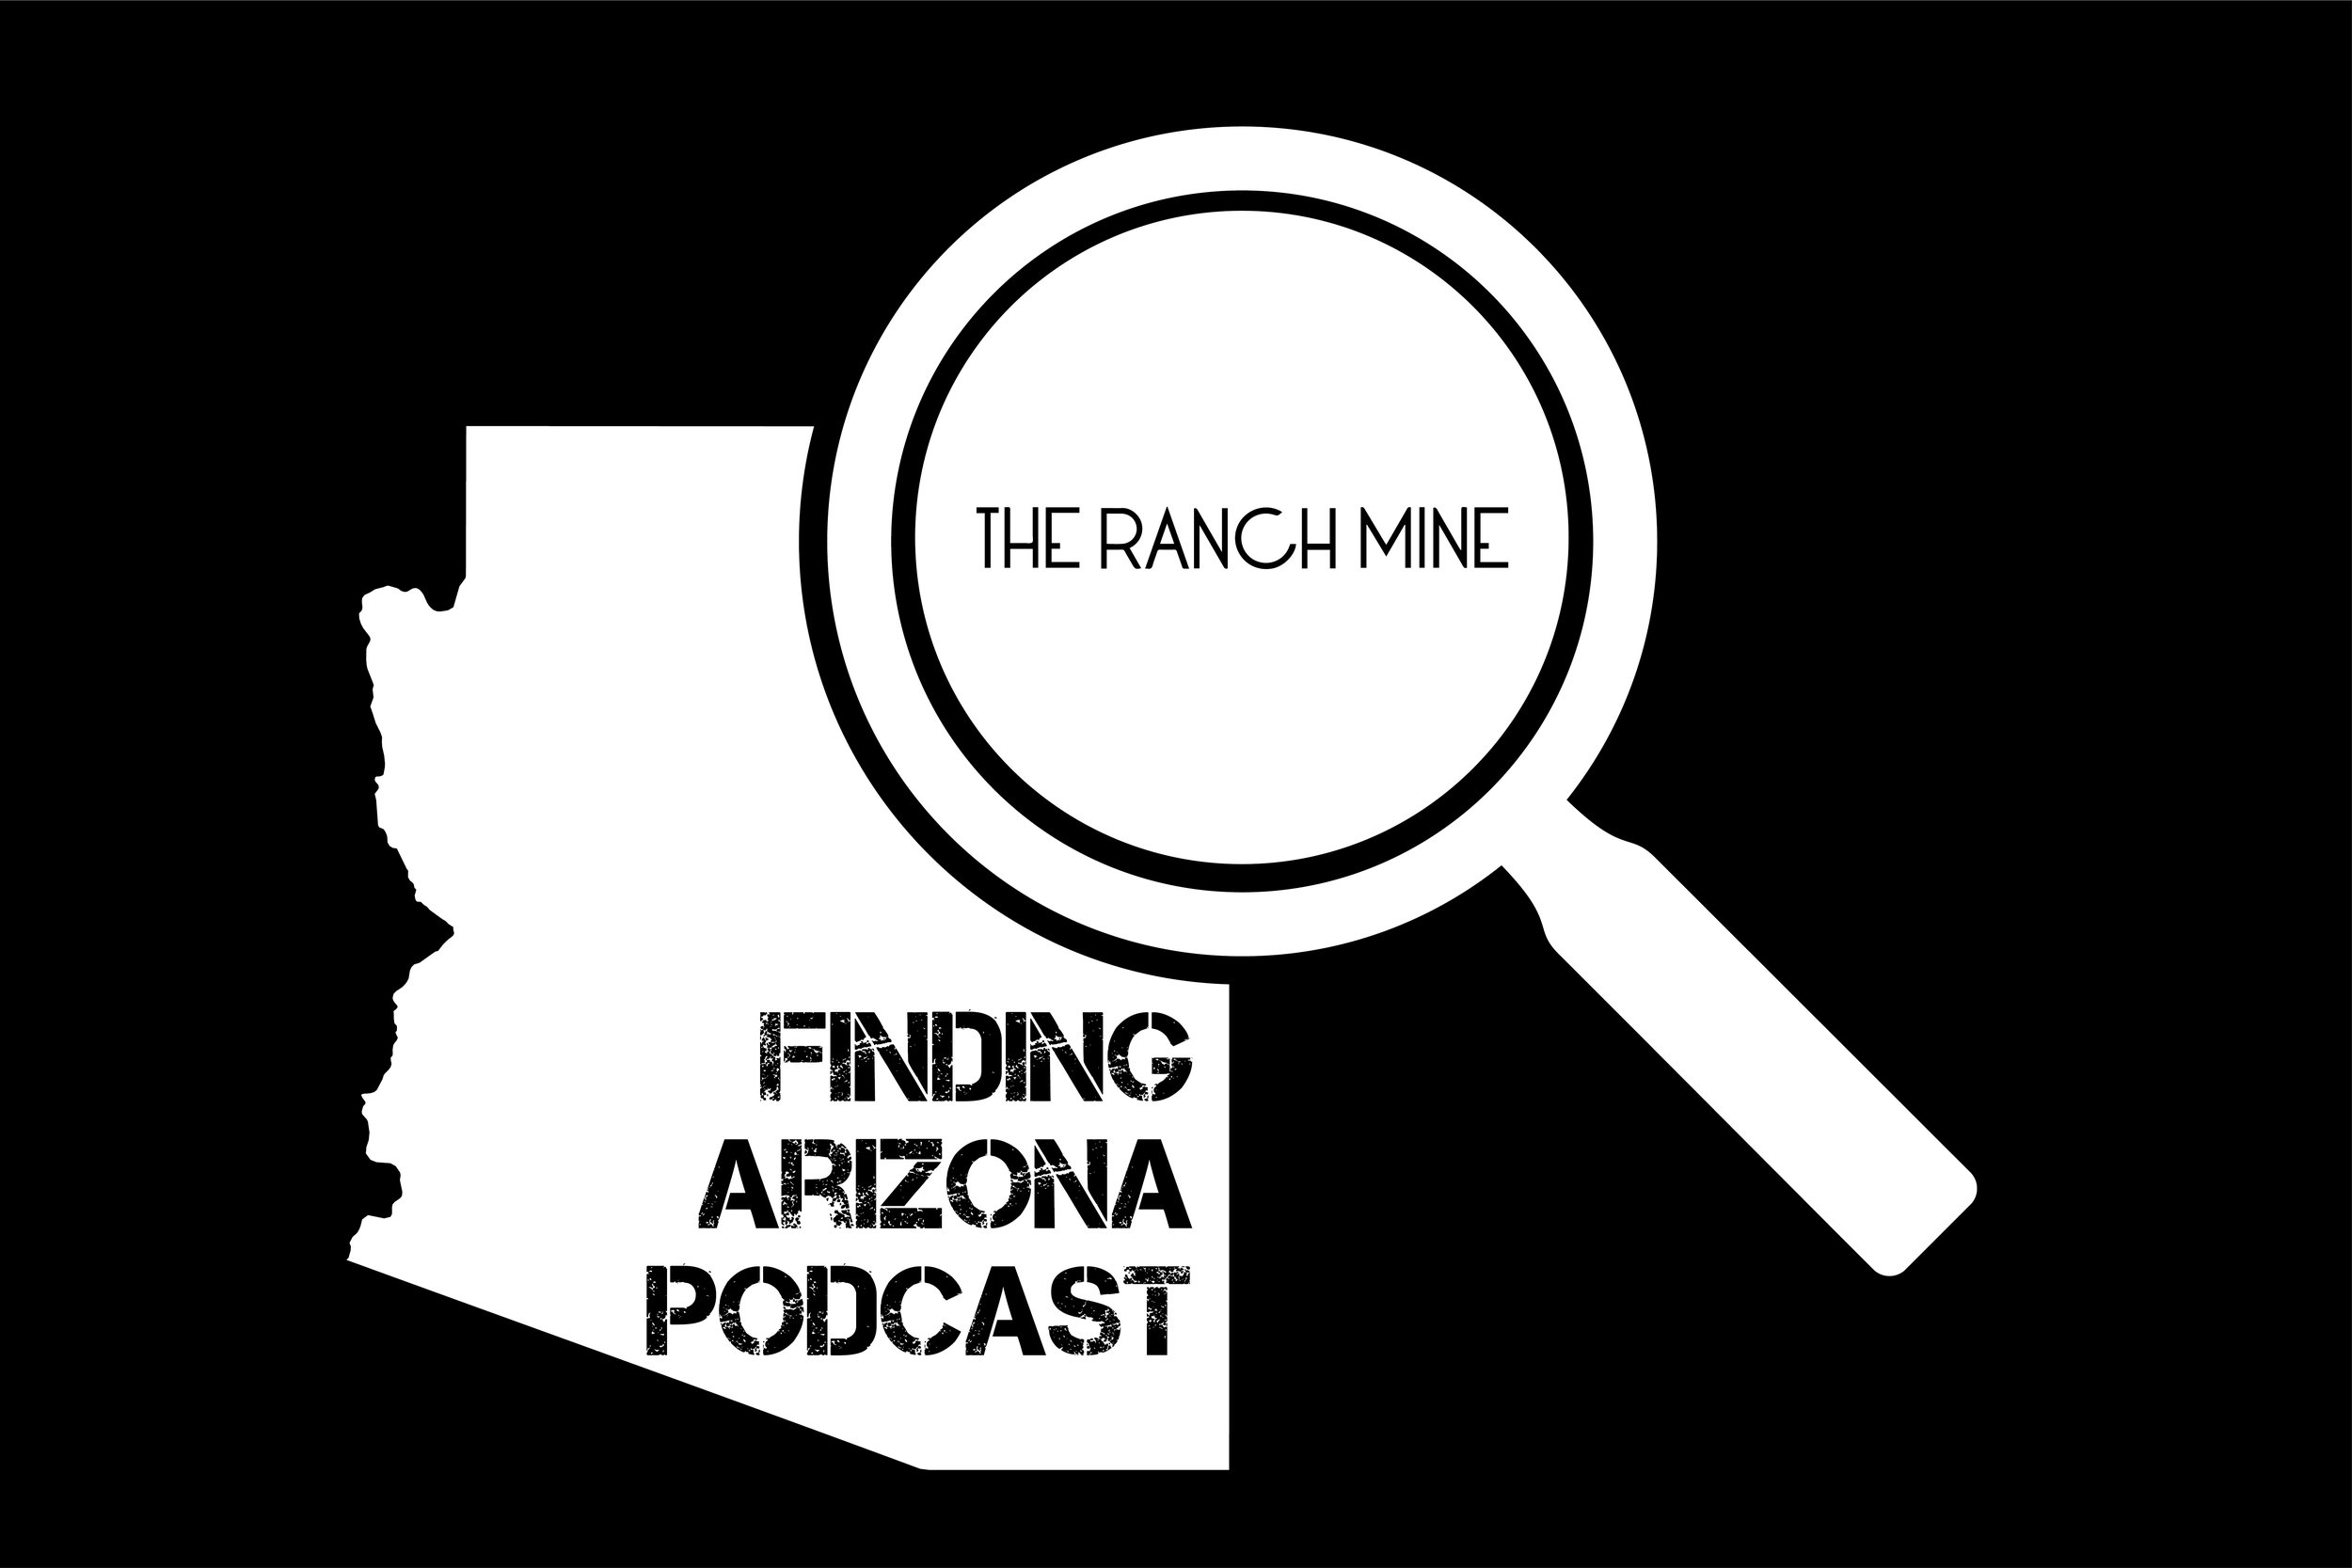 PodCastLogo-RanchMine-large.jpg